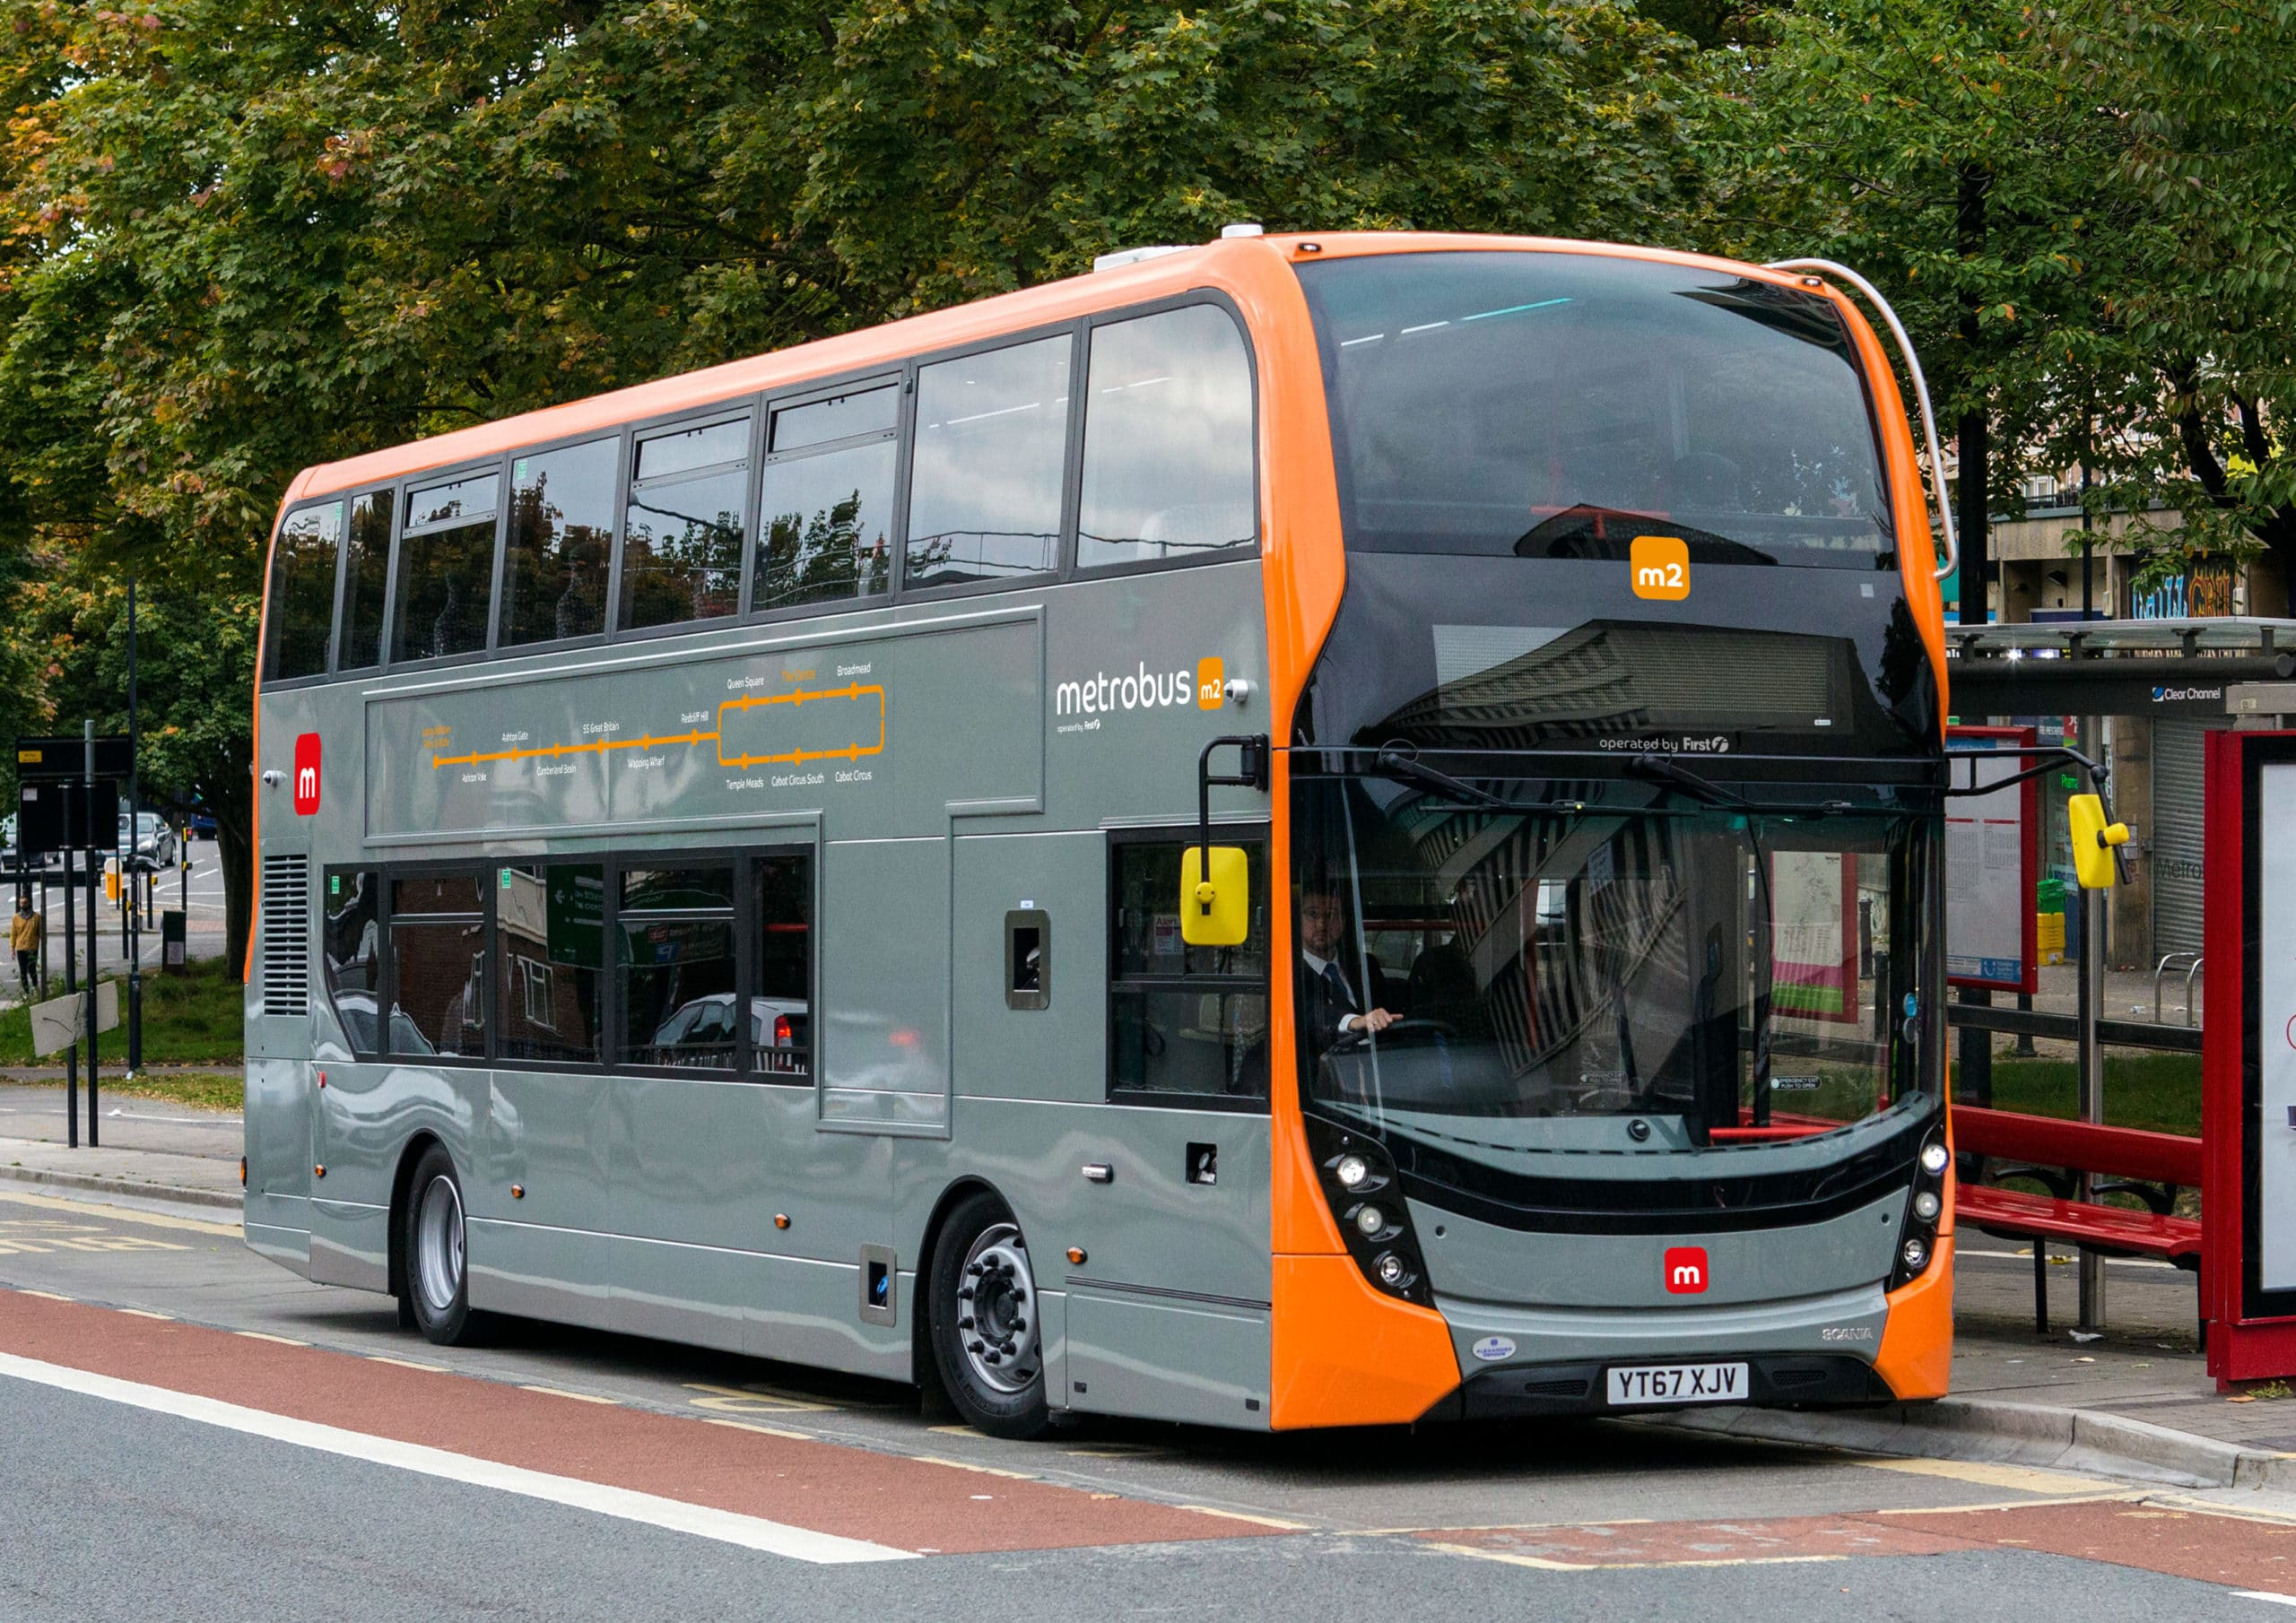 photo of an orange and grey metrobus m2 bus at a bus stop